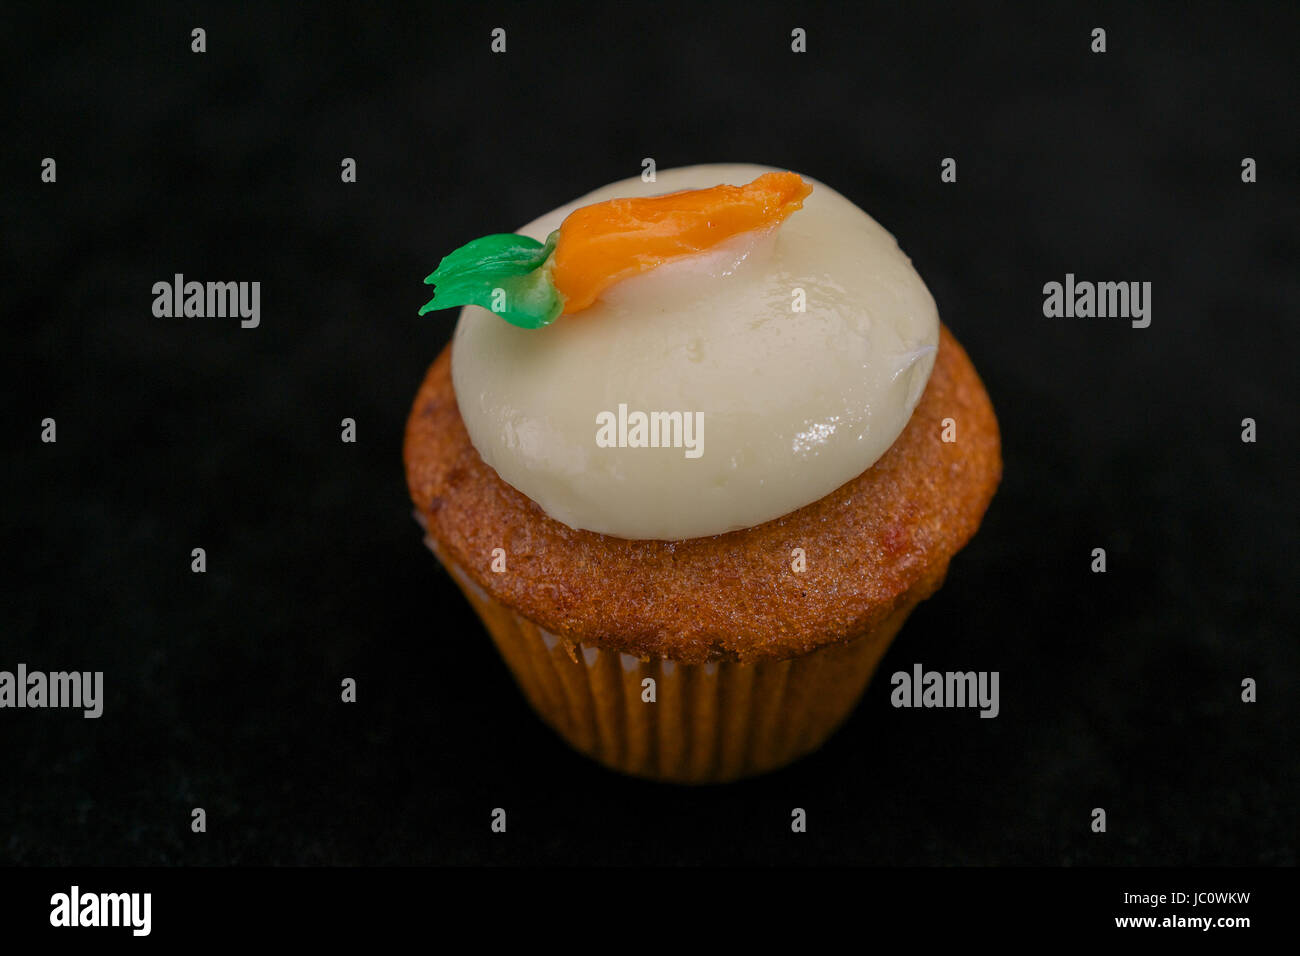 Carrot cupcake garnished with decorated with whipped cream frosting and a carrot, on black background - Stock Image